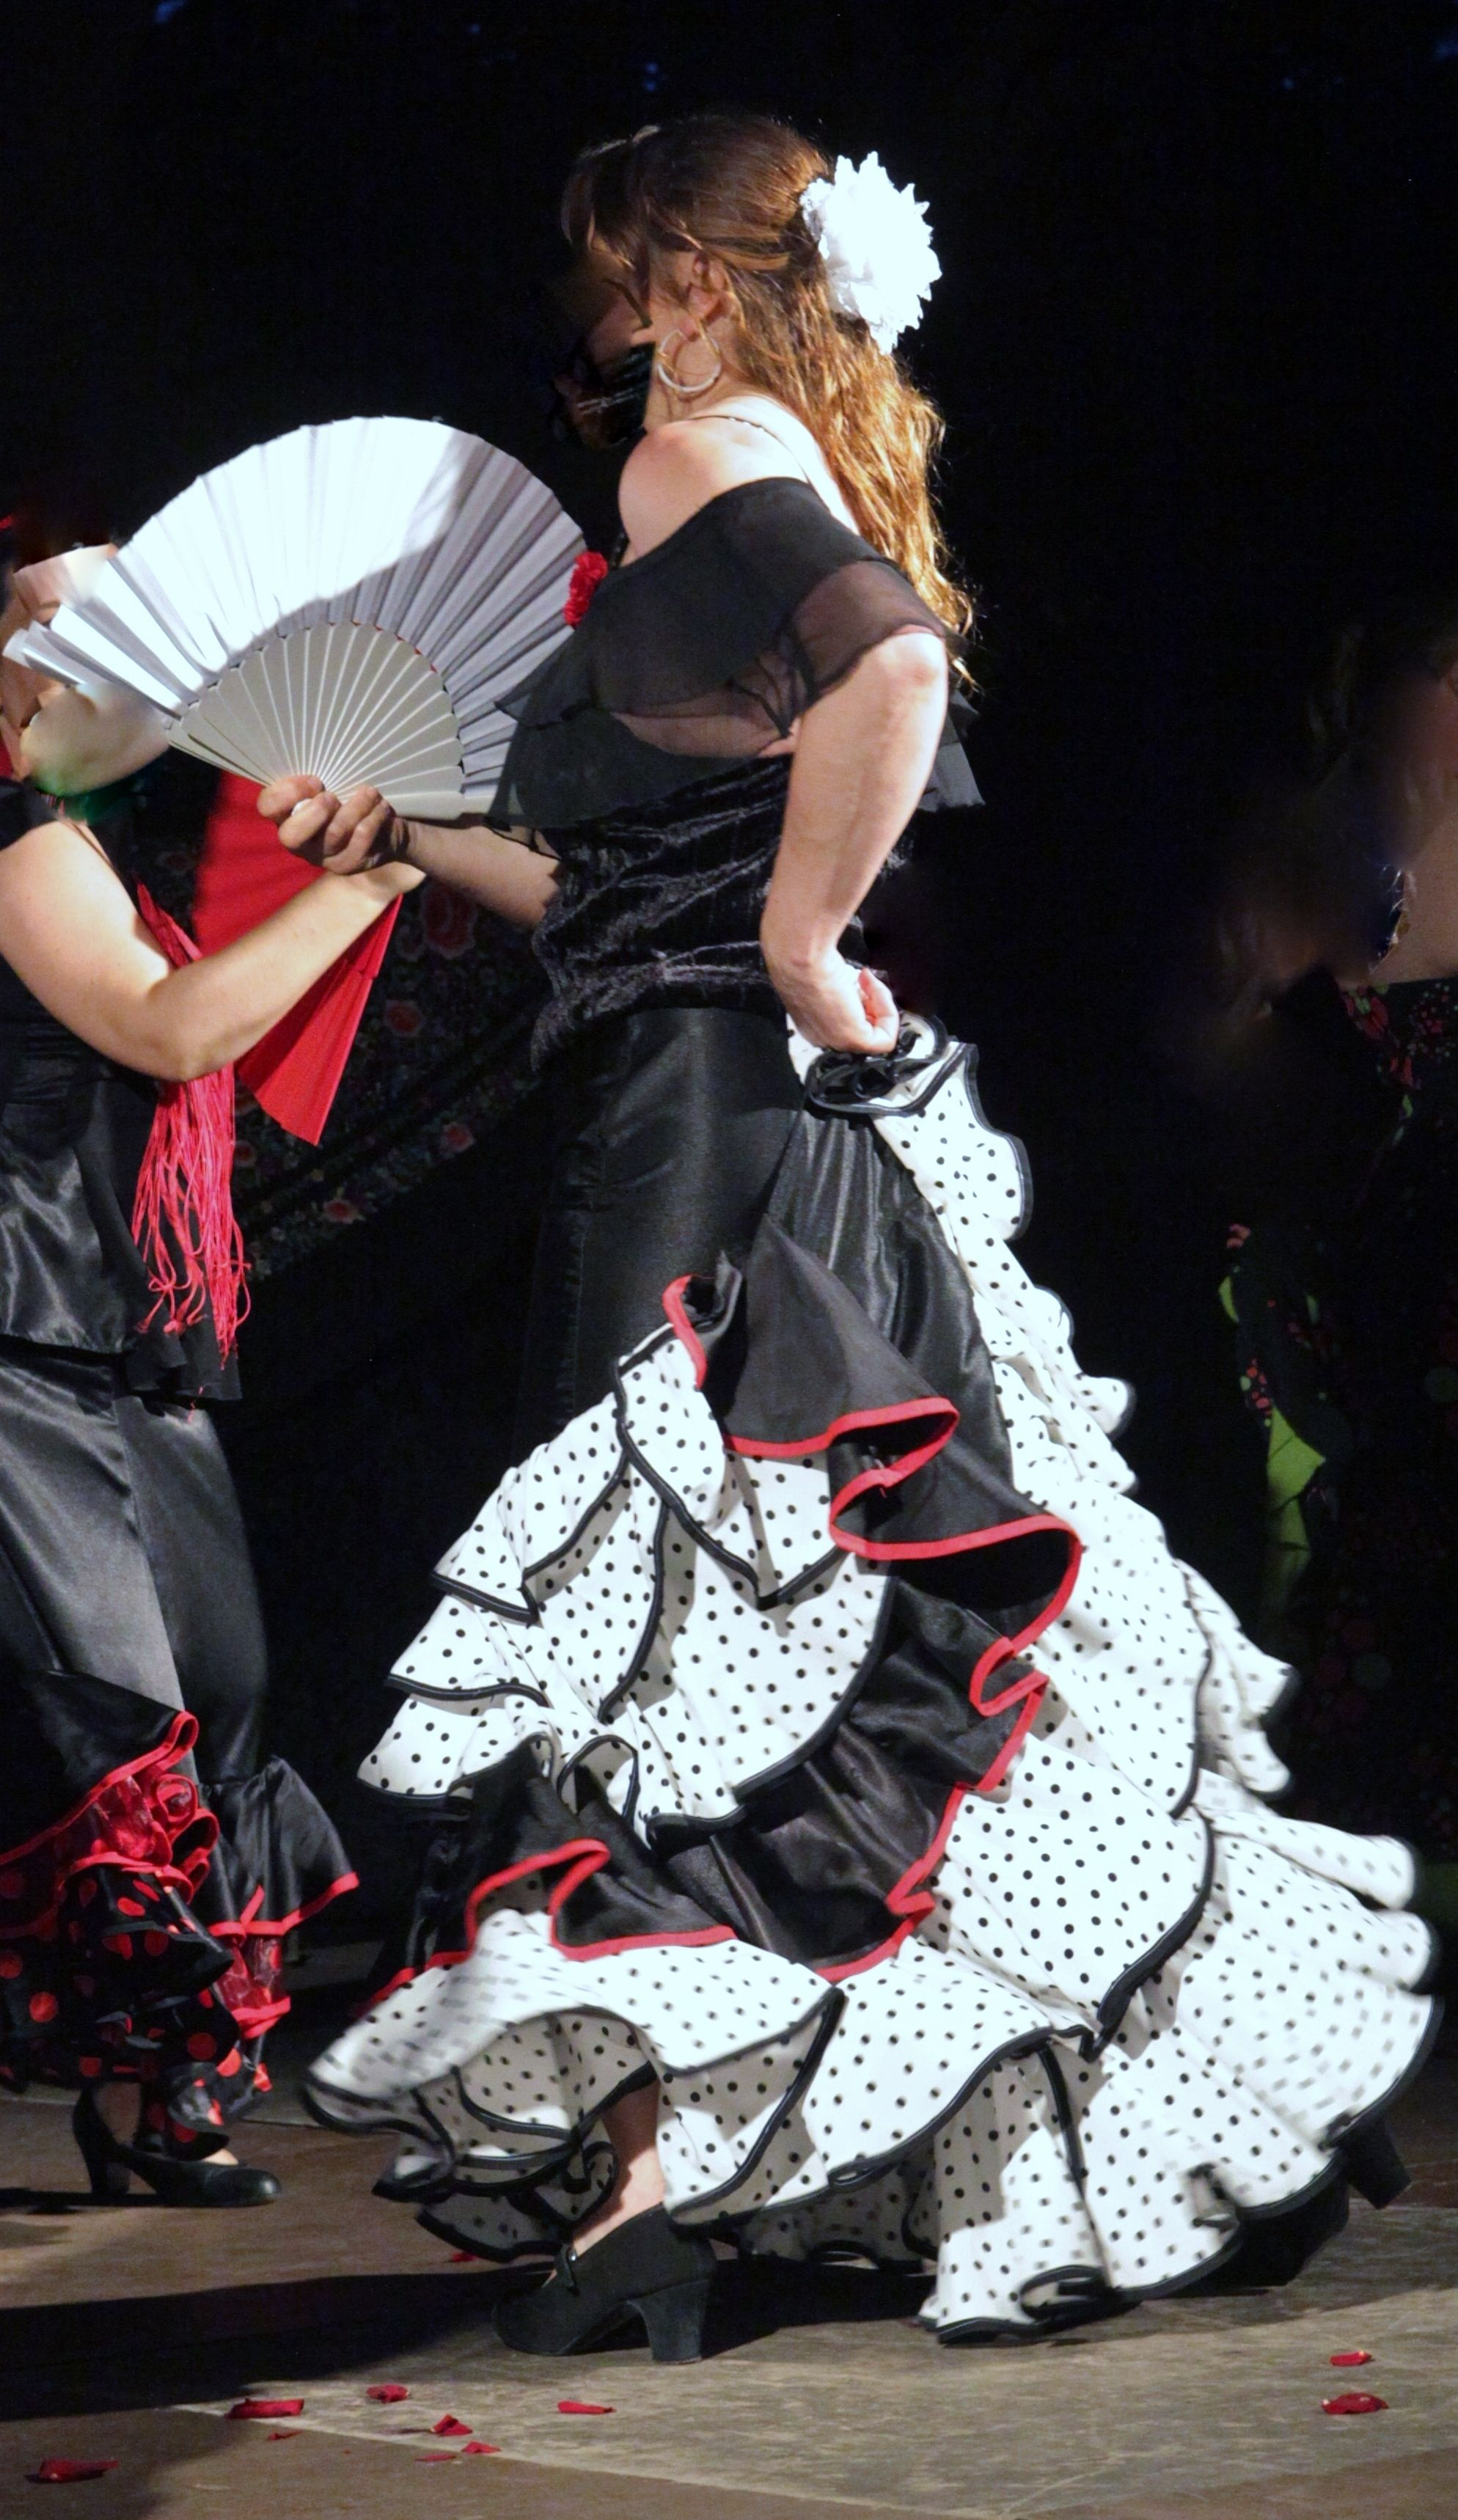 Creer ensemble votre robe ou jupe de flamenco et sevillane for Robe ou ensemble habillé